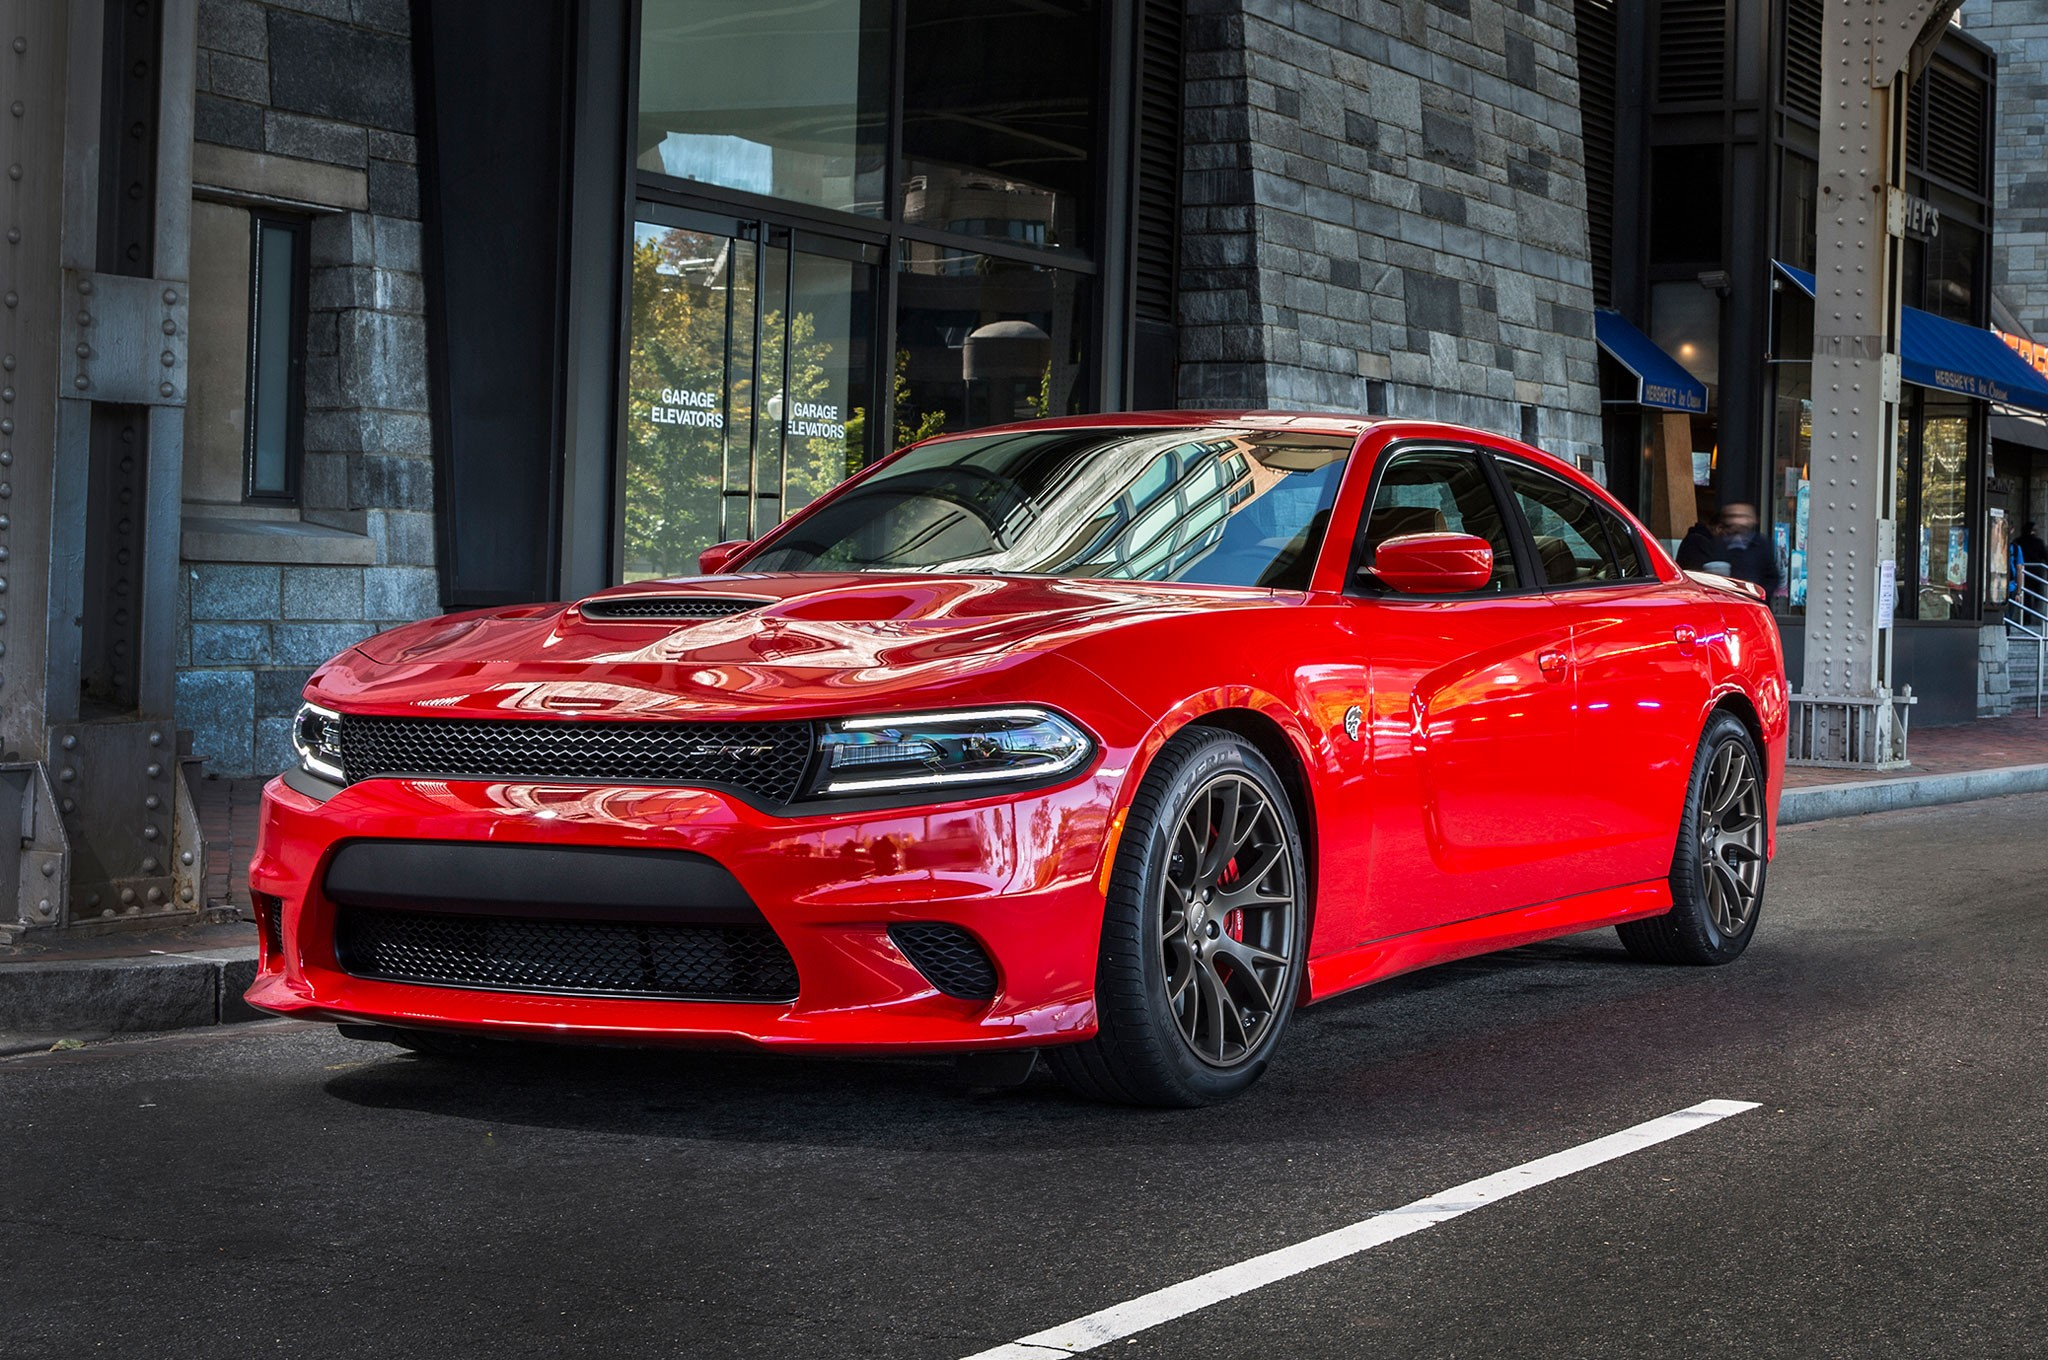 2018 Dodge Charger Srt8 Red